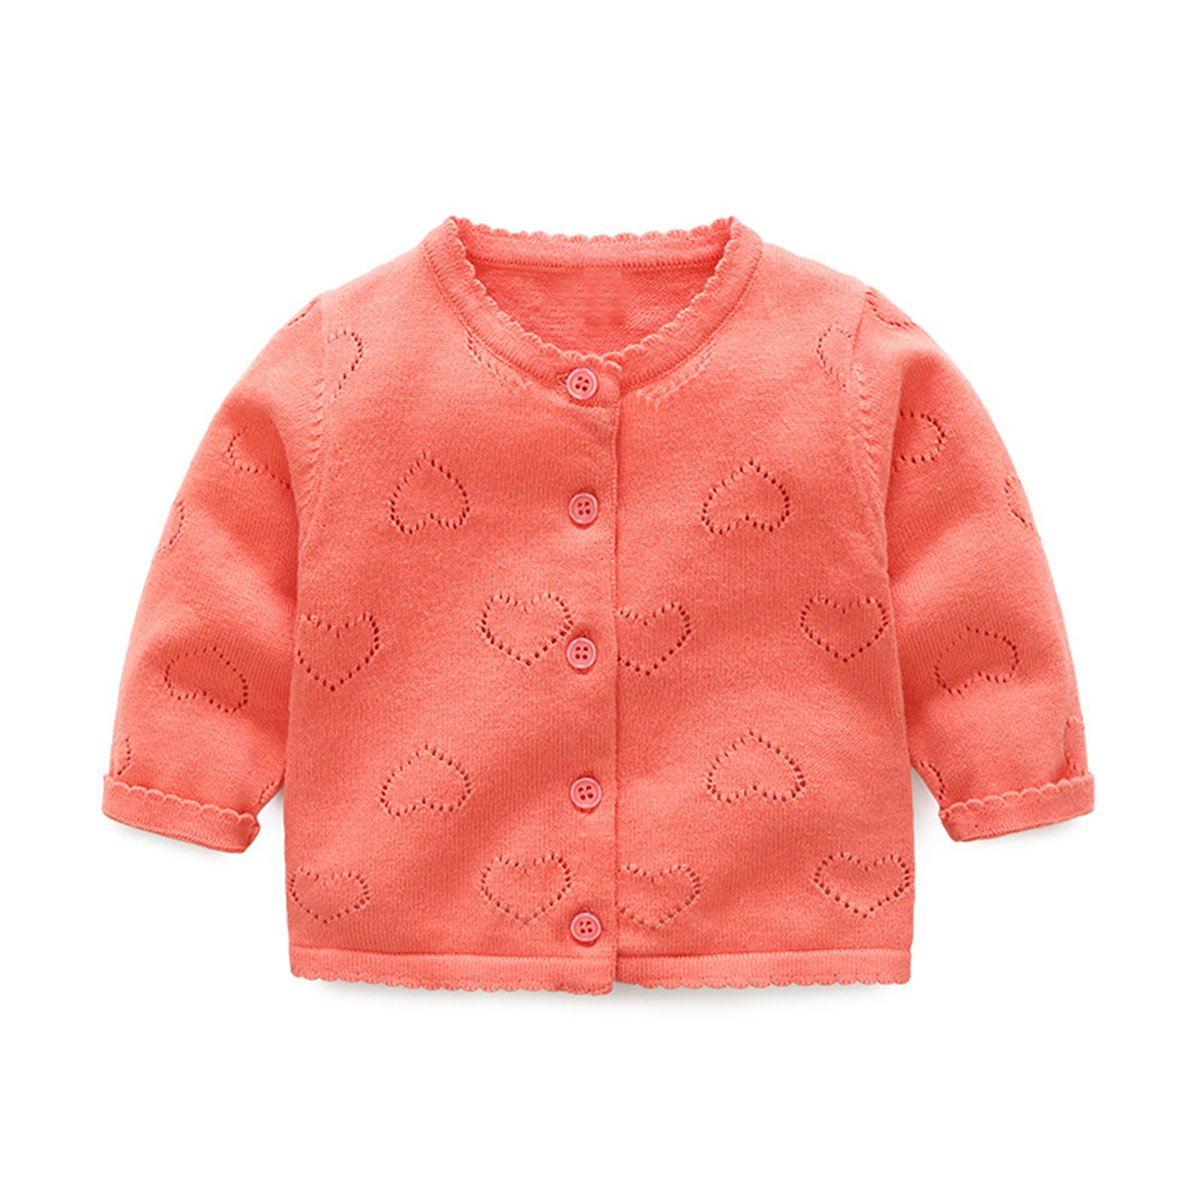 TAIYCYXGAN Baby Toddler Girls Cardigan Knit Sweater 0-2T Princess Heart Sweater Jacket Coat for Dresses Button-Down